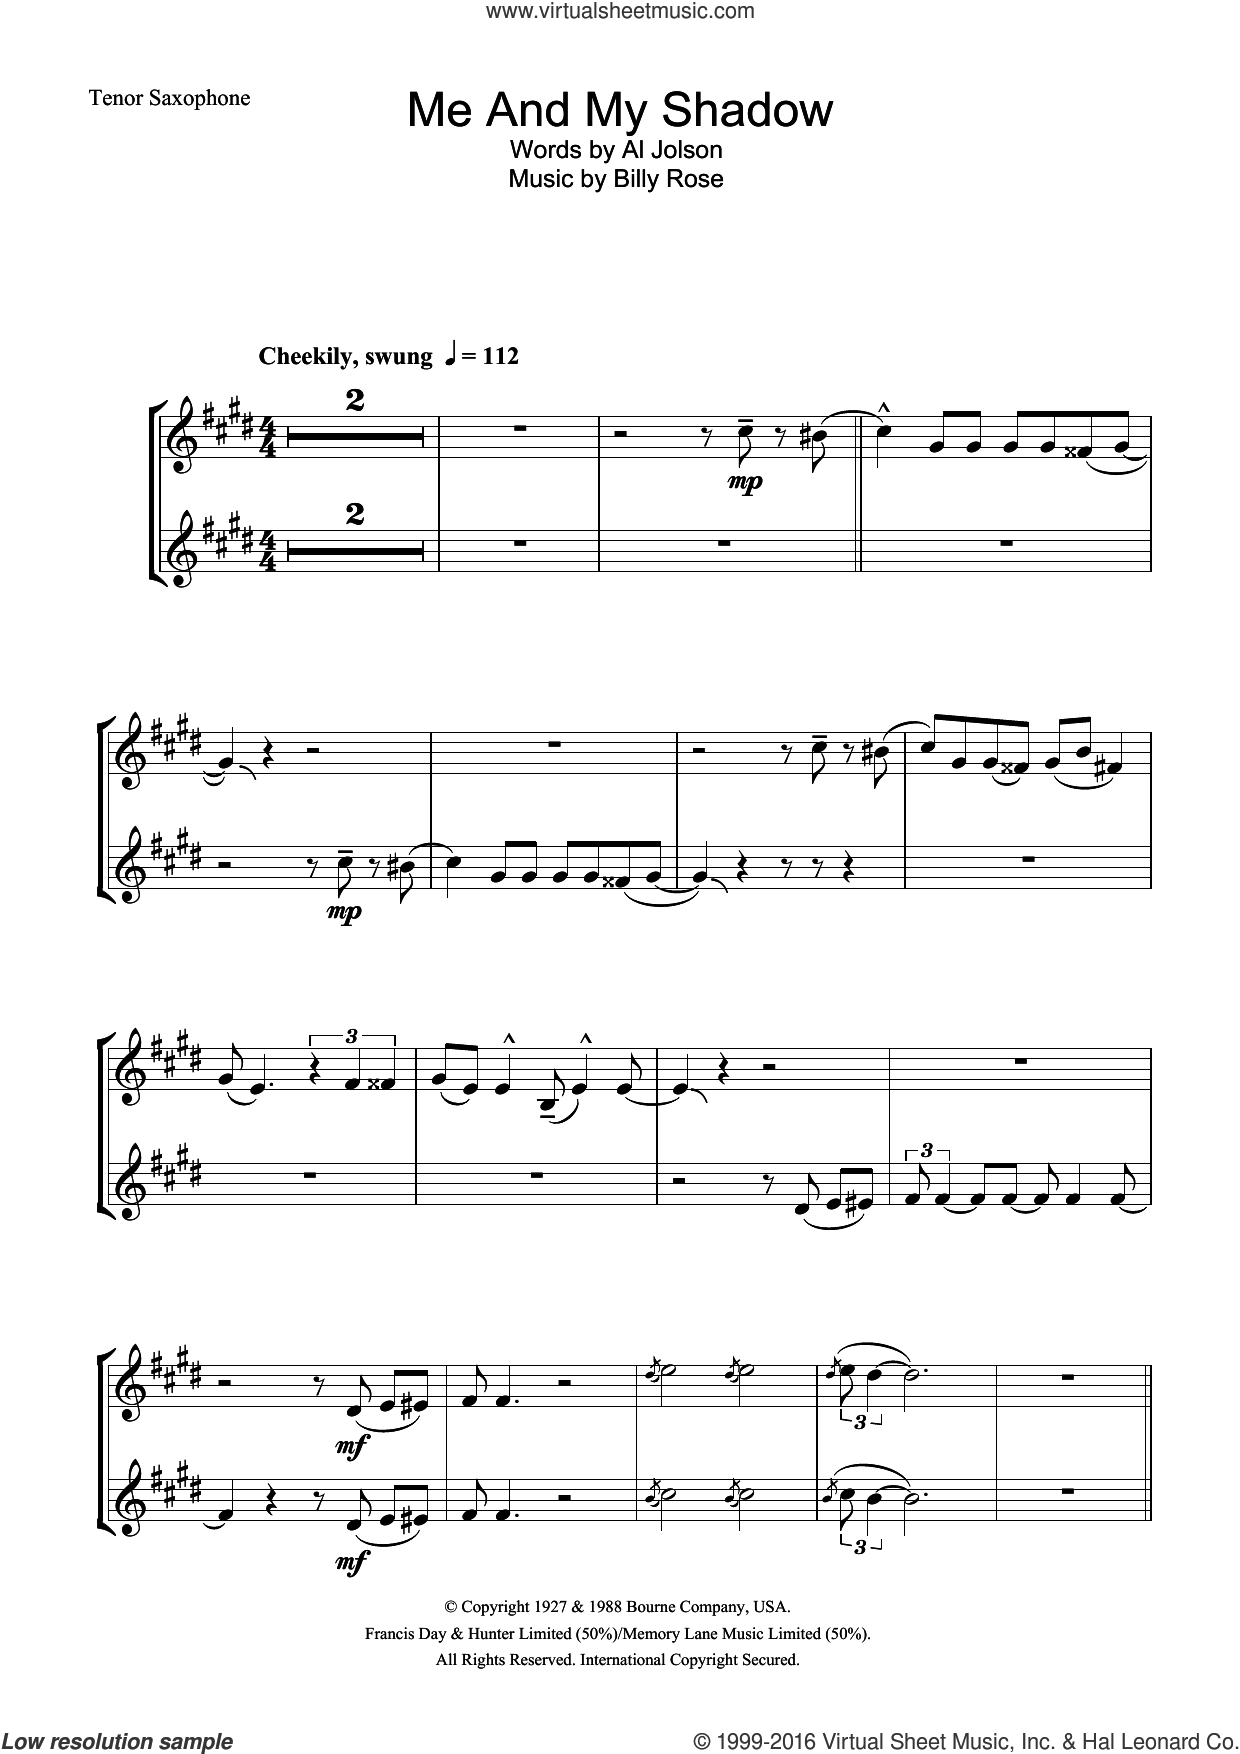 Me And My Shadow sheet music for tenor saxophone solo by Frank Sinatra, Al Jolson and Billy Rose, intermediate skill level